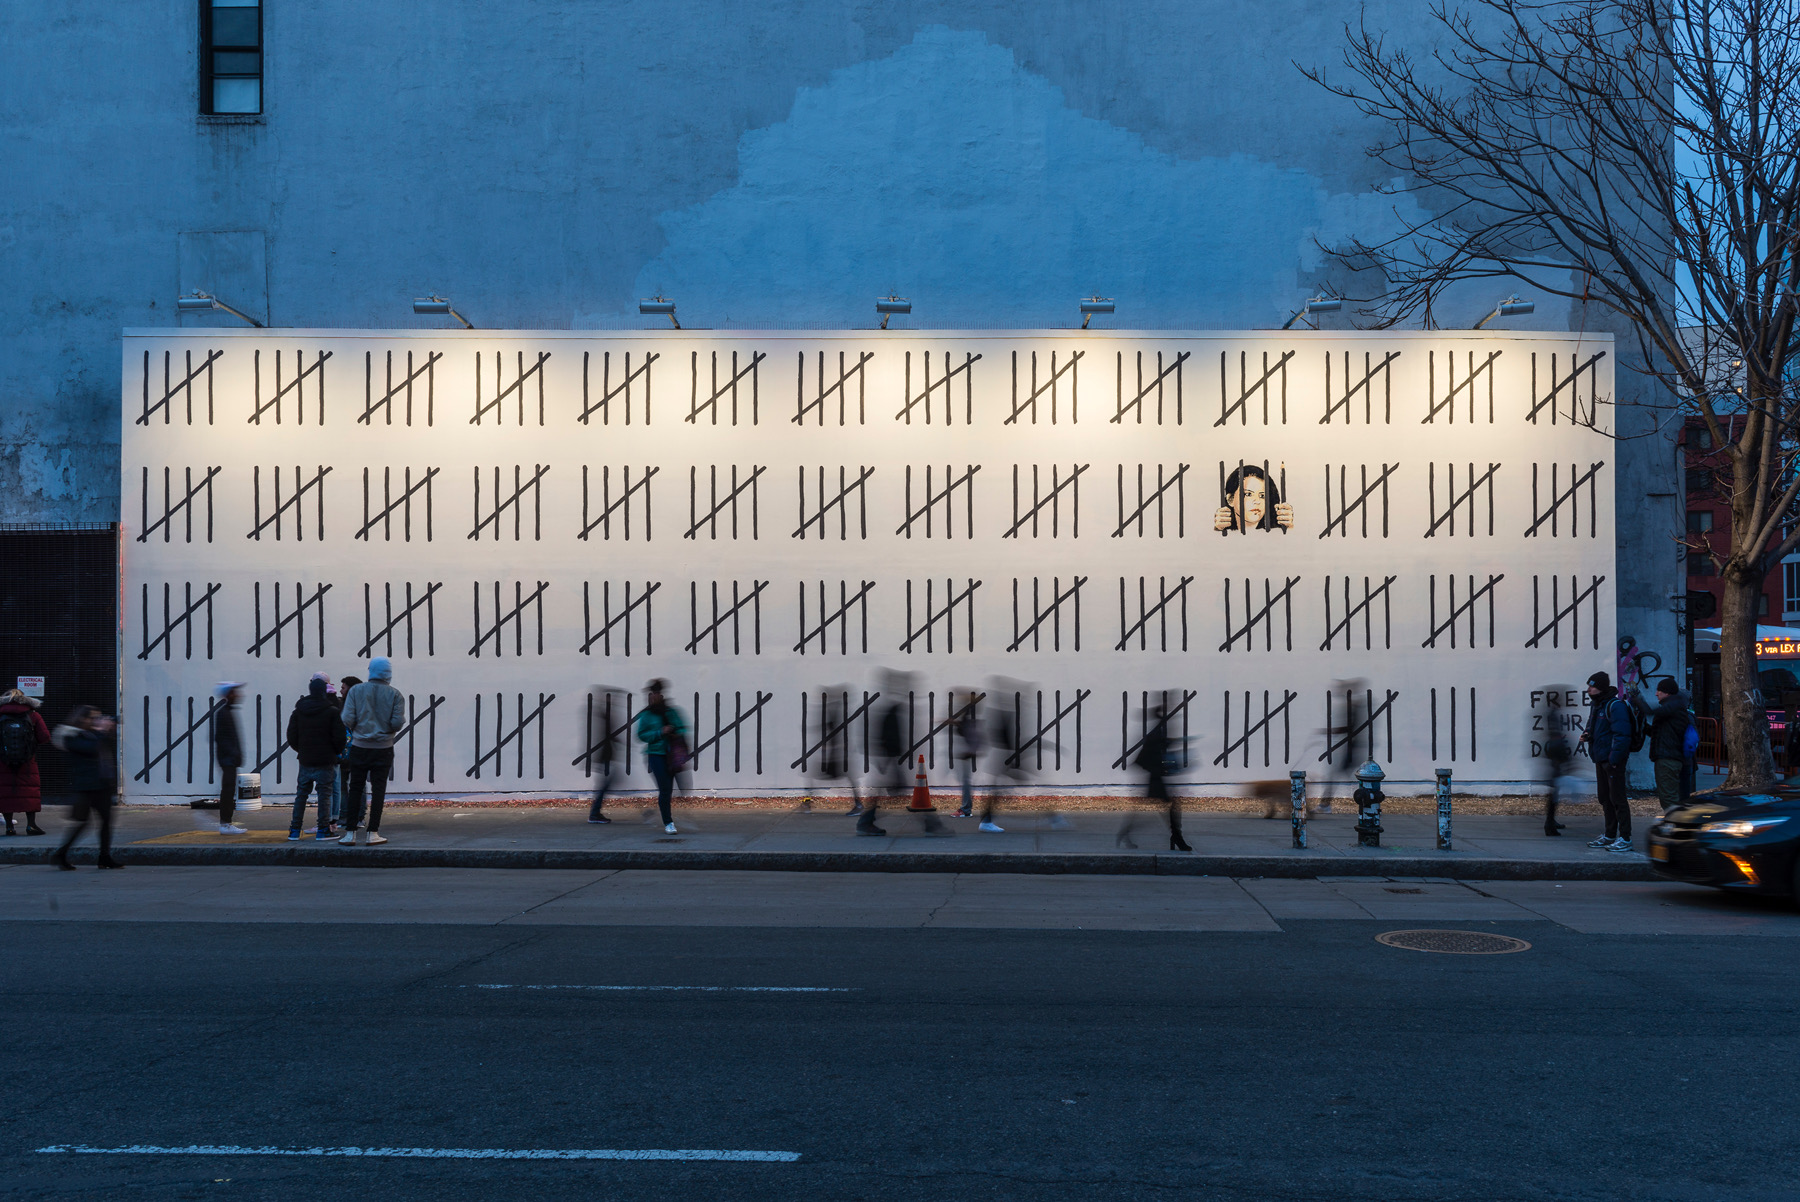 Banksy Takes Over Houston Bowery Wall in New York City Artes & contextos image1111